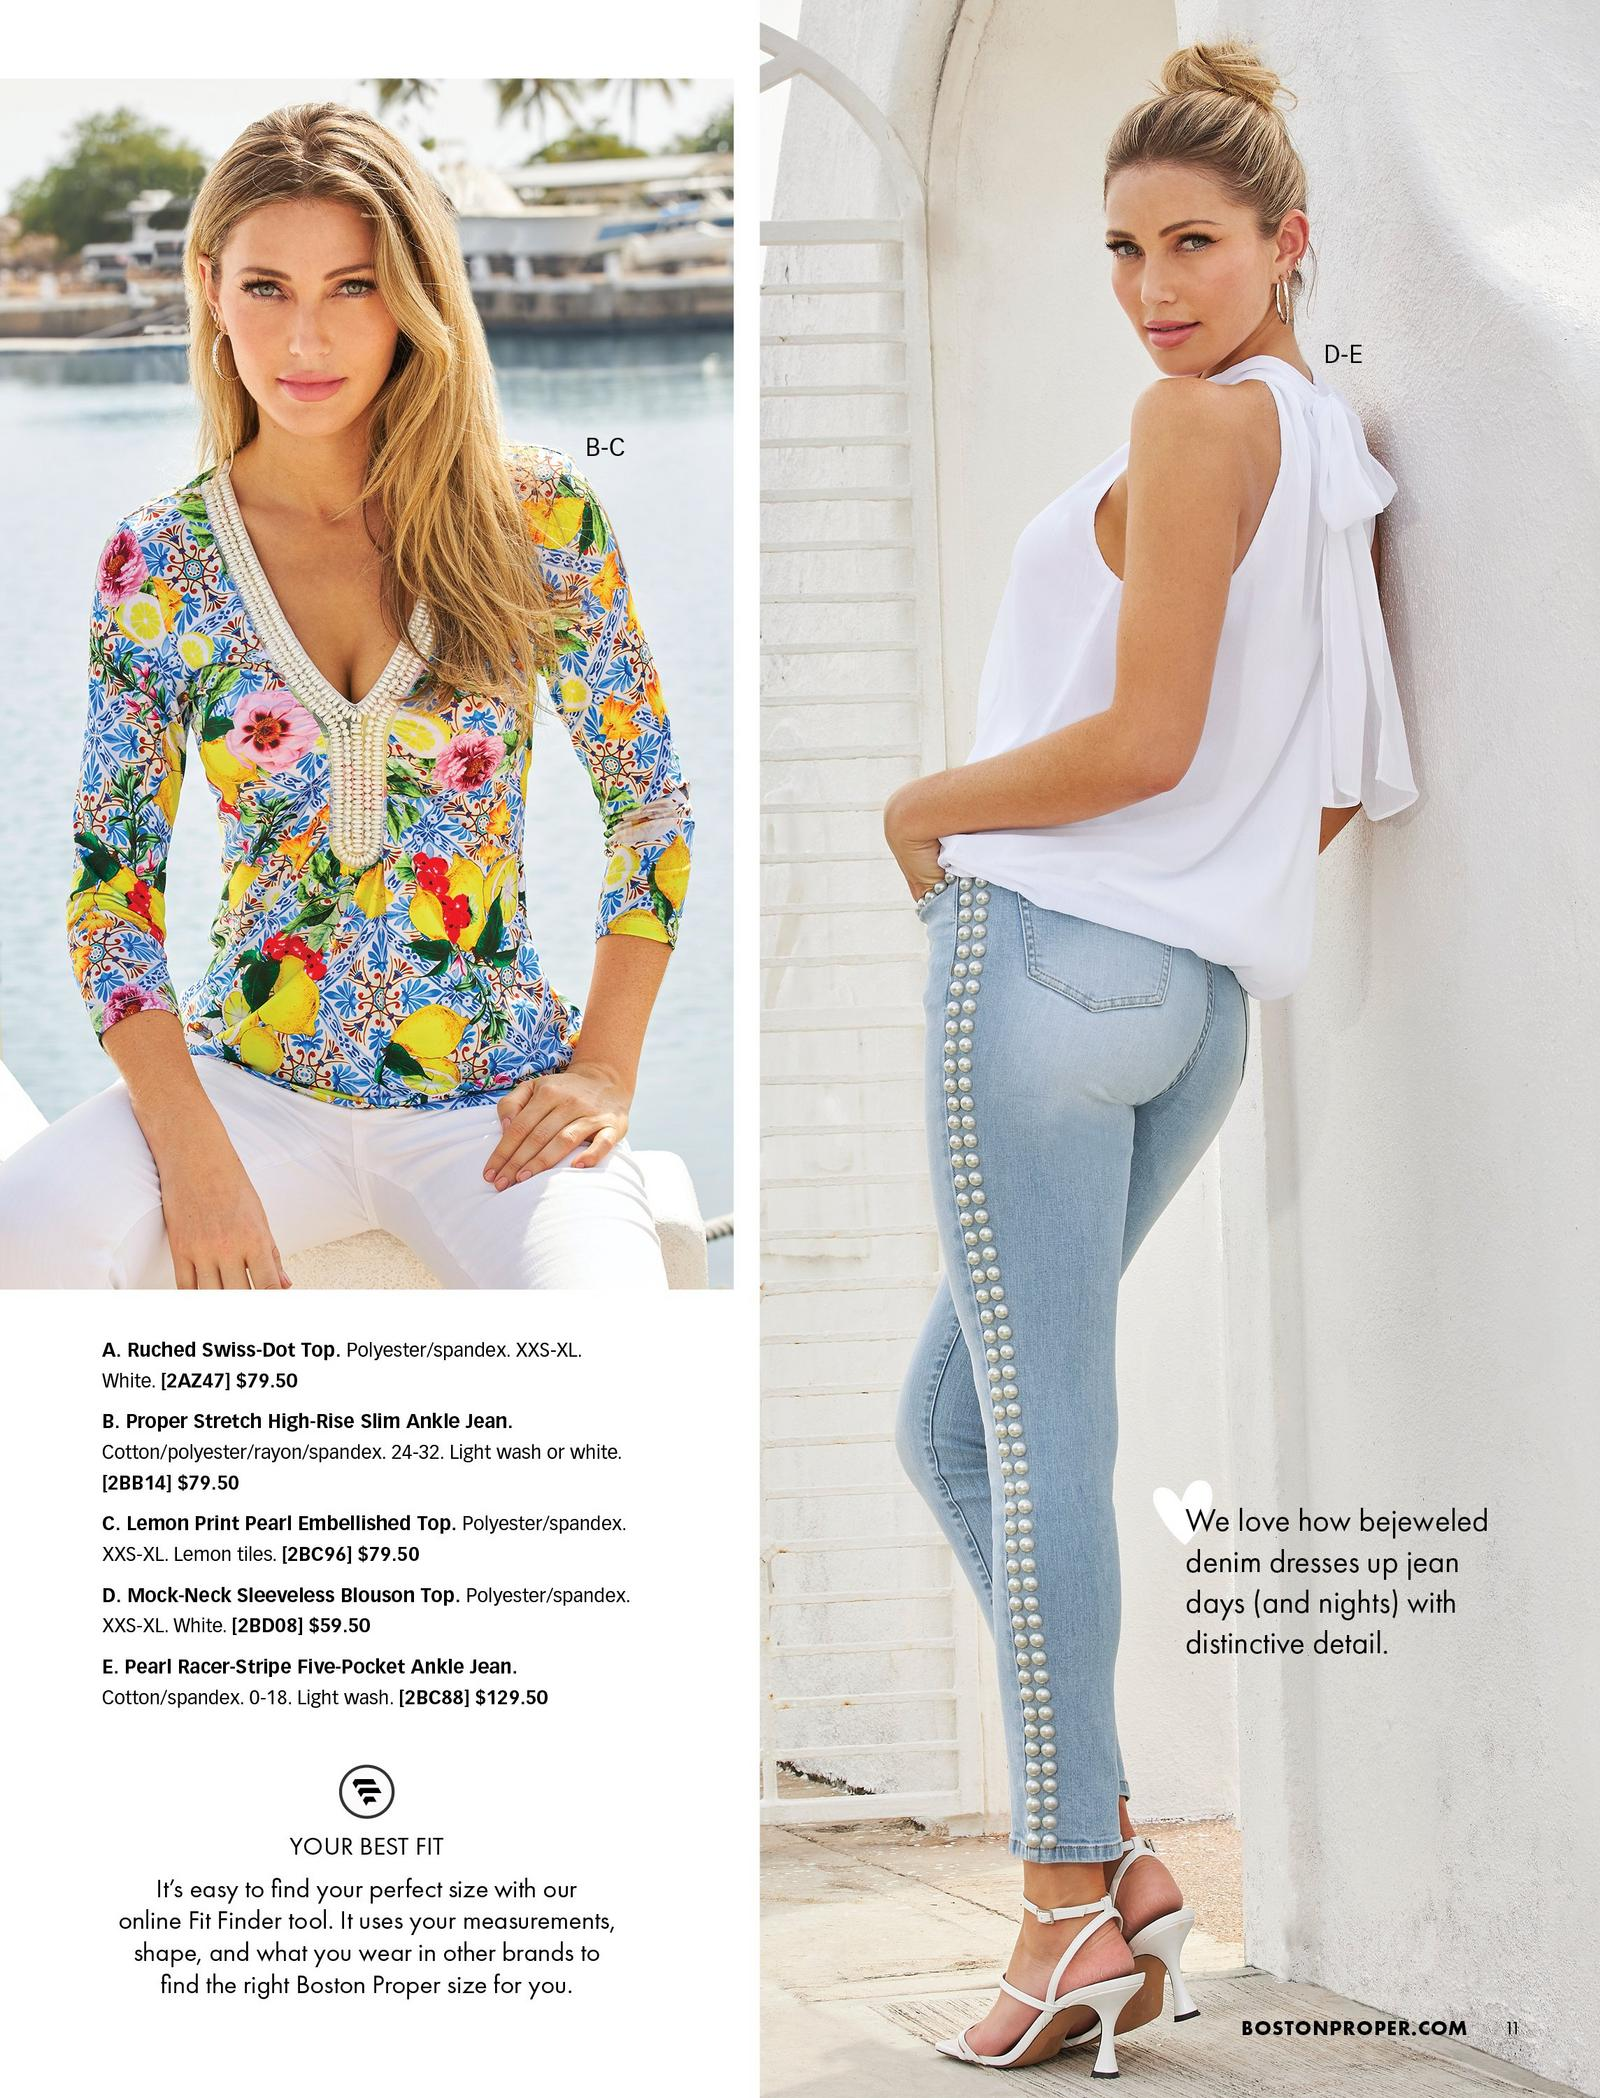 left model wearing a lemon print multicolored embellished long-sleeve top and white jeans. right model wearing a white sleeveless mock-neck blouson top, light wash jeans with pearl embellishments, gold hoop earrings, and white heels.